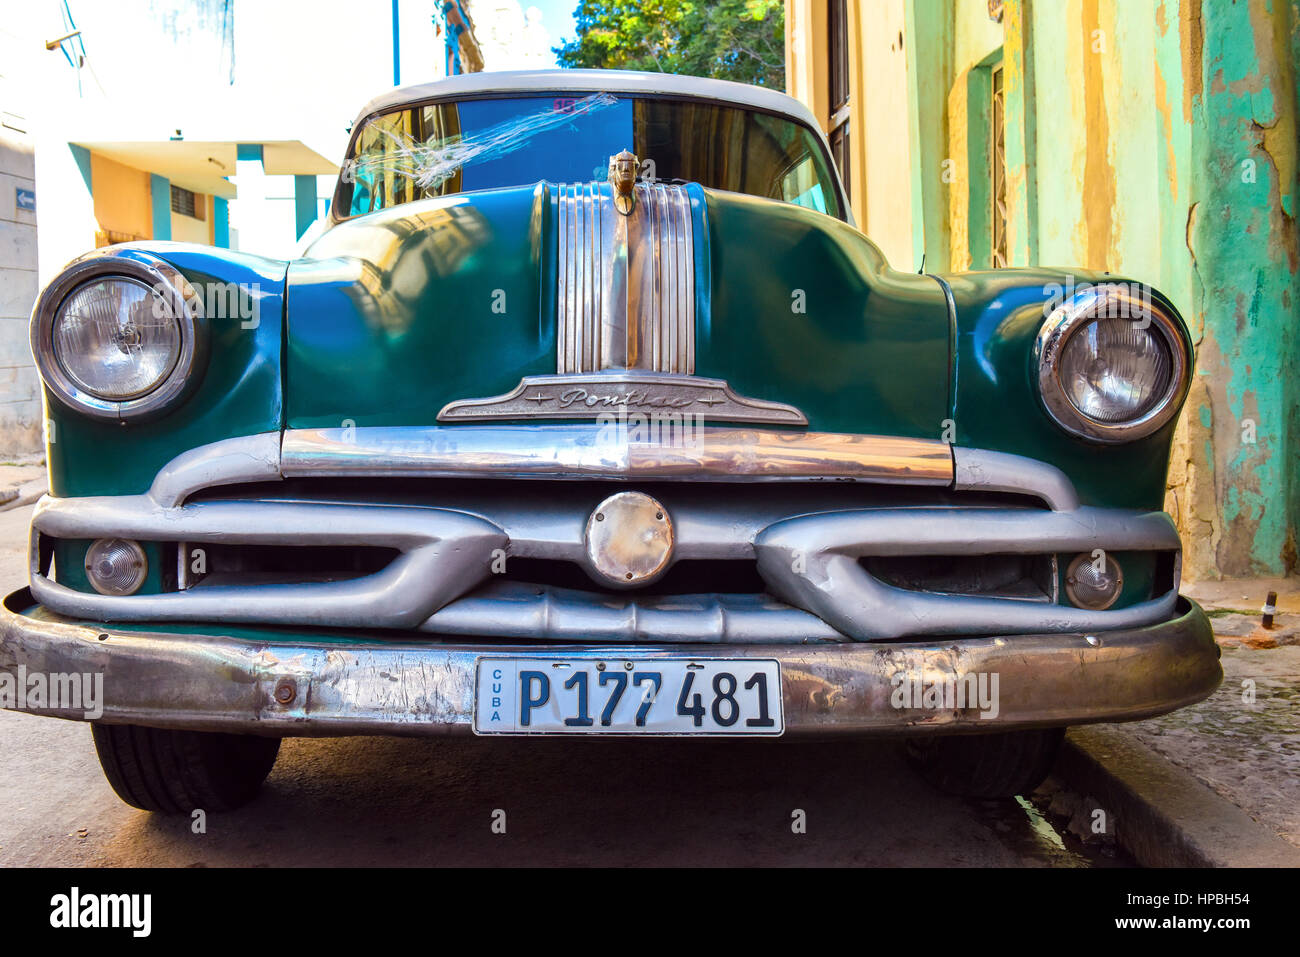 Cuban Memorabilia Stock Photos & Cuban Memorabilia Stock Images - Alamy